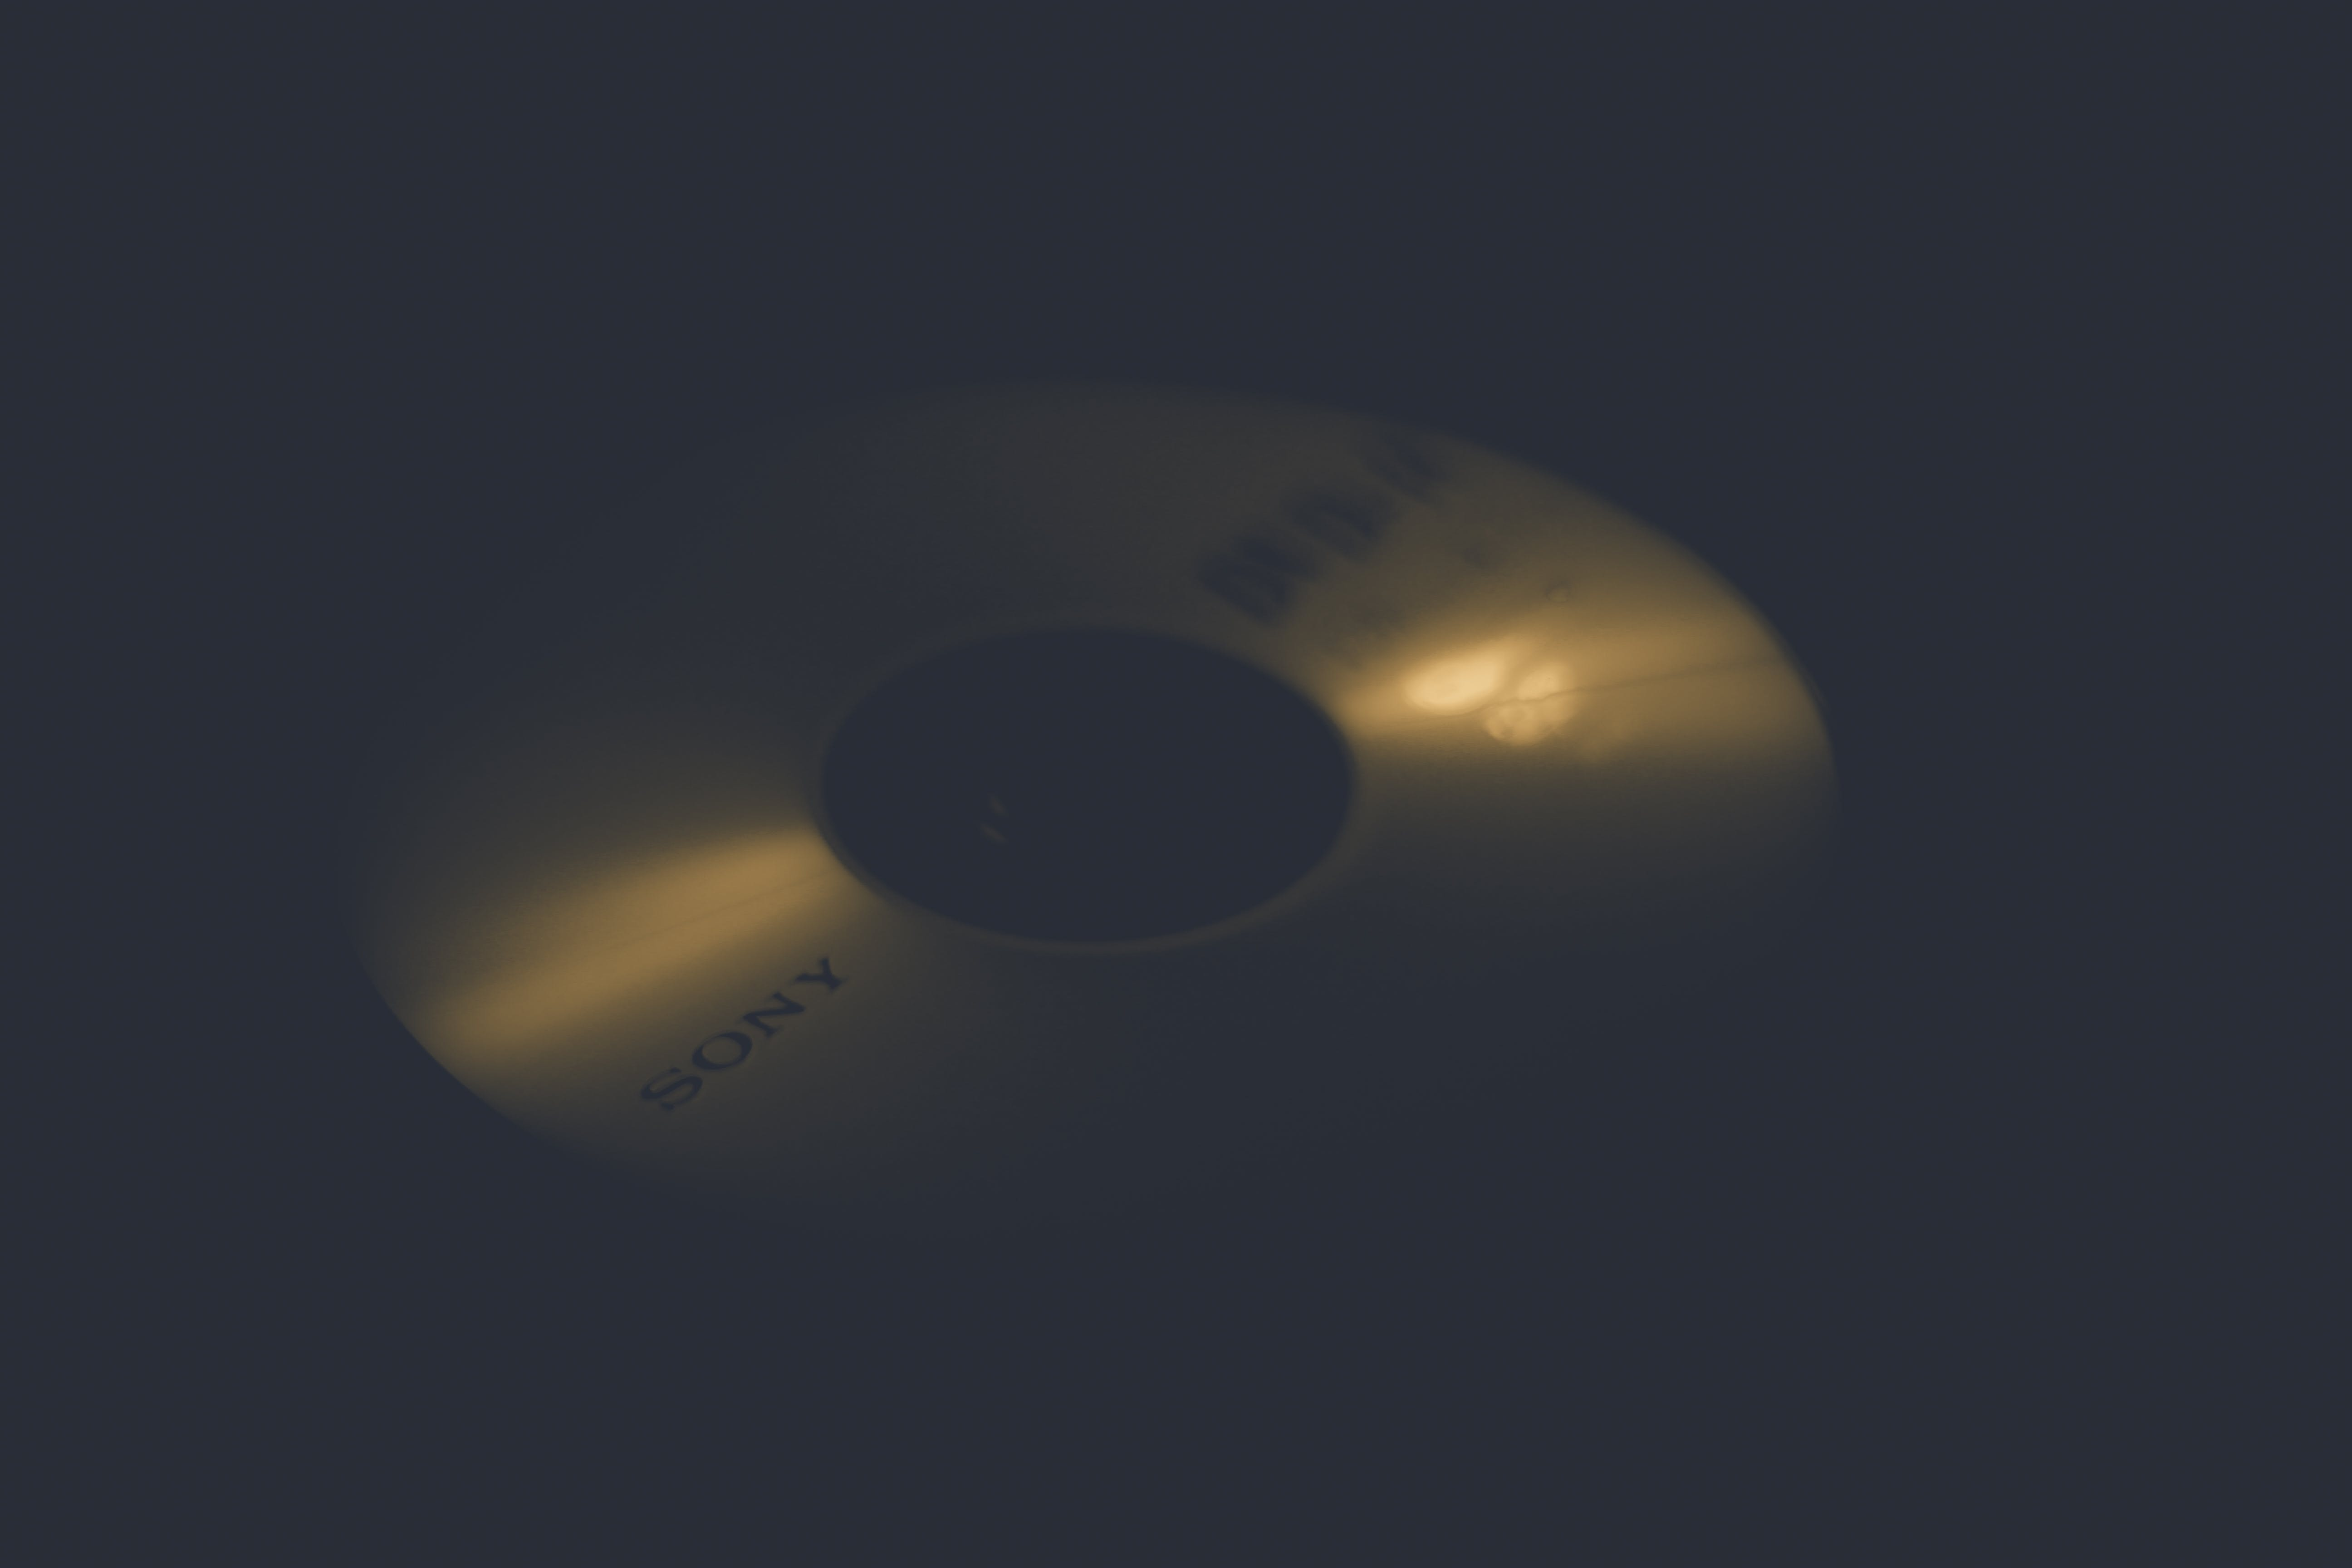 Free stock photo of black background, candlelight, disc, dvd